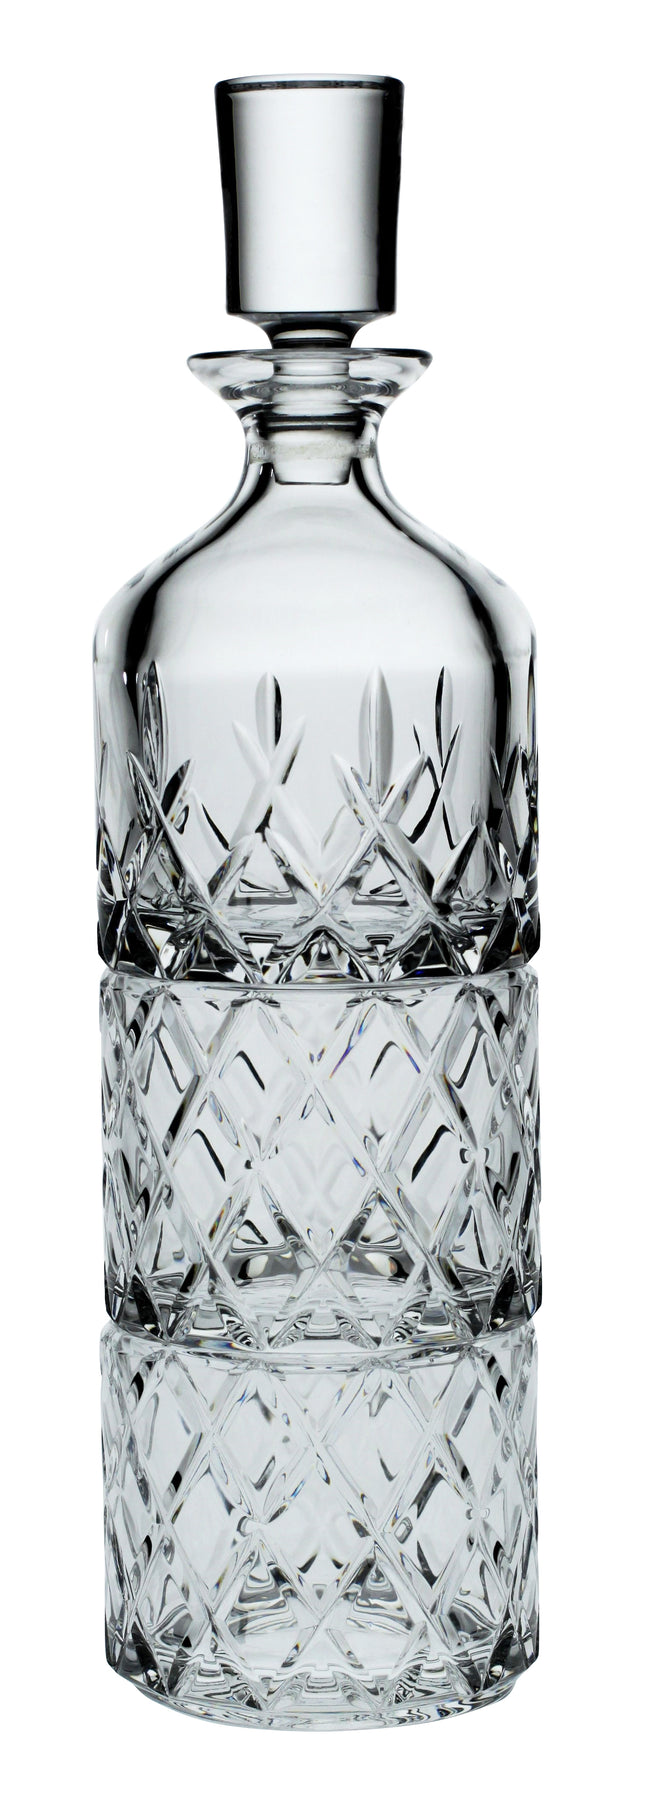 Crystal 3 Piece Whisky Set